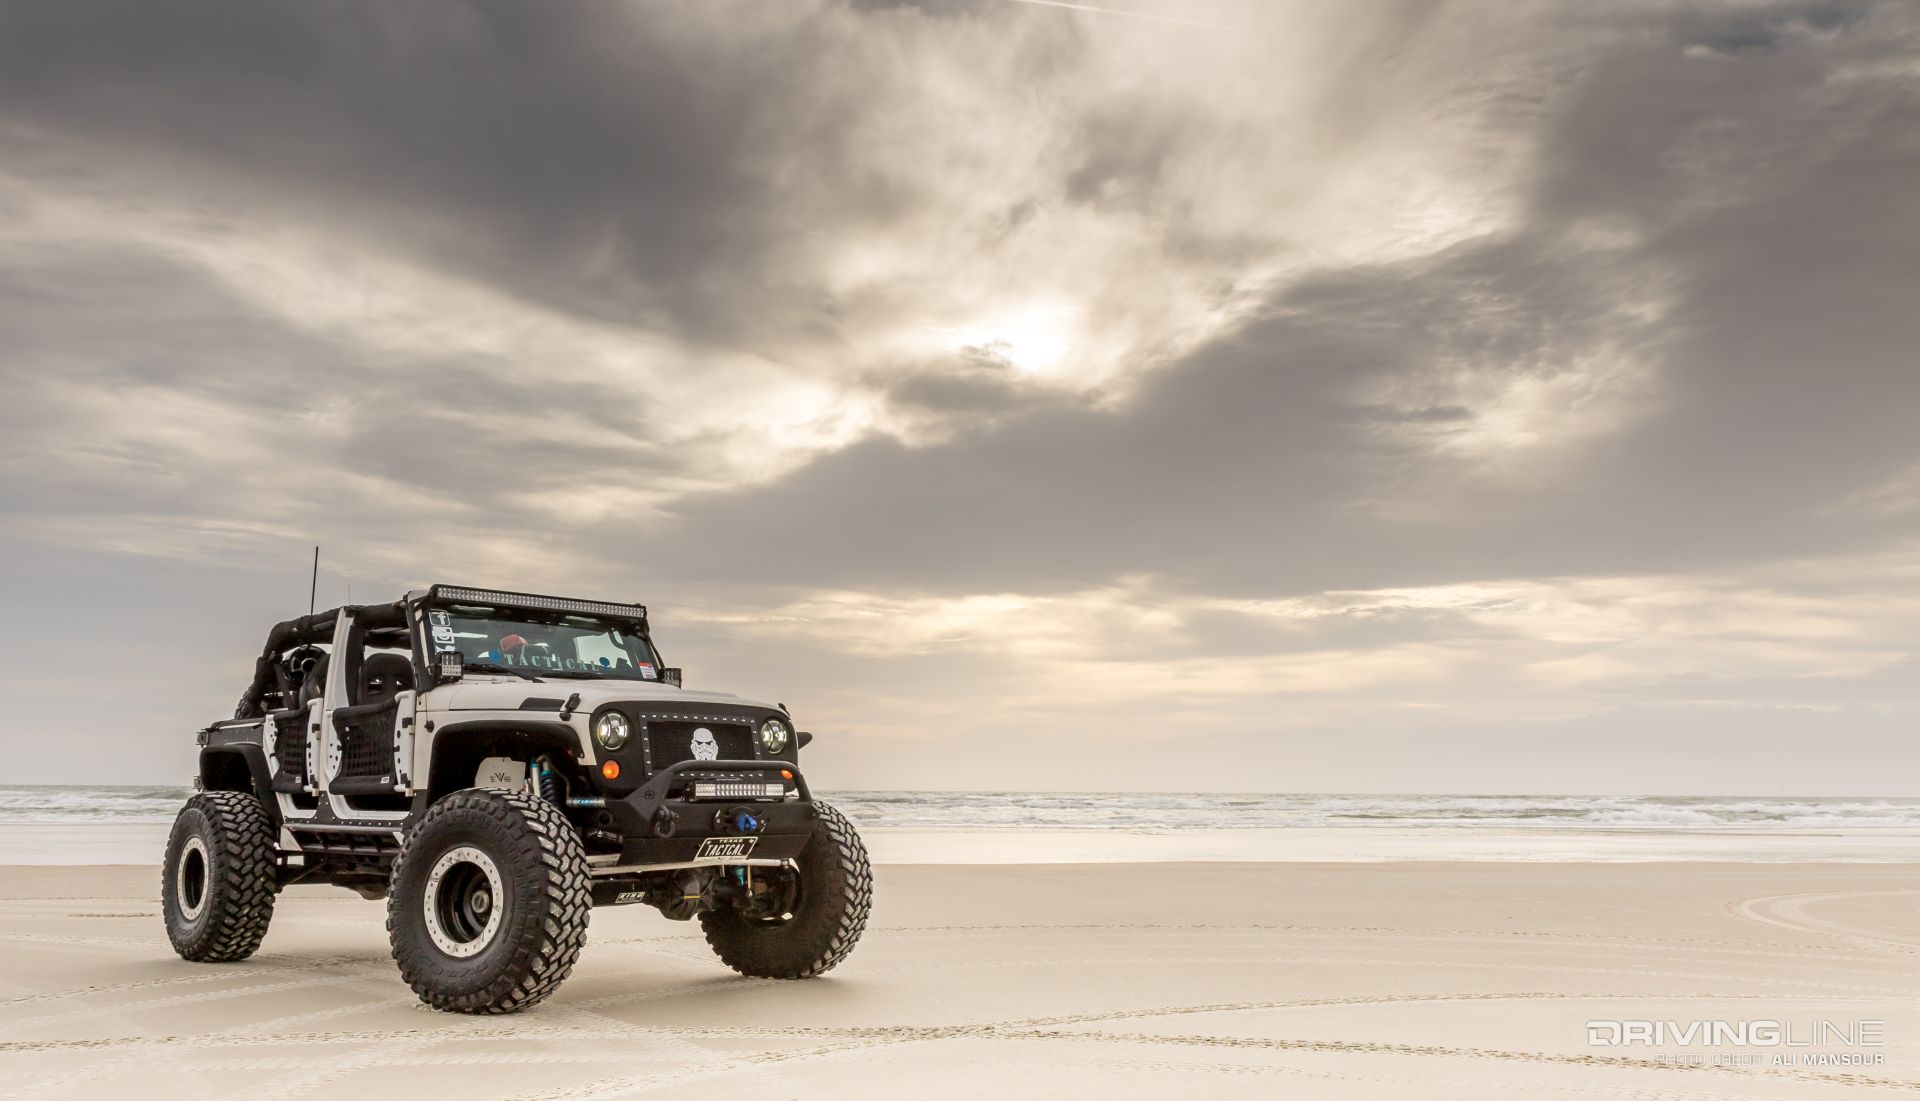 10 Reasons to Be at Jeep Beach | DrivingLine